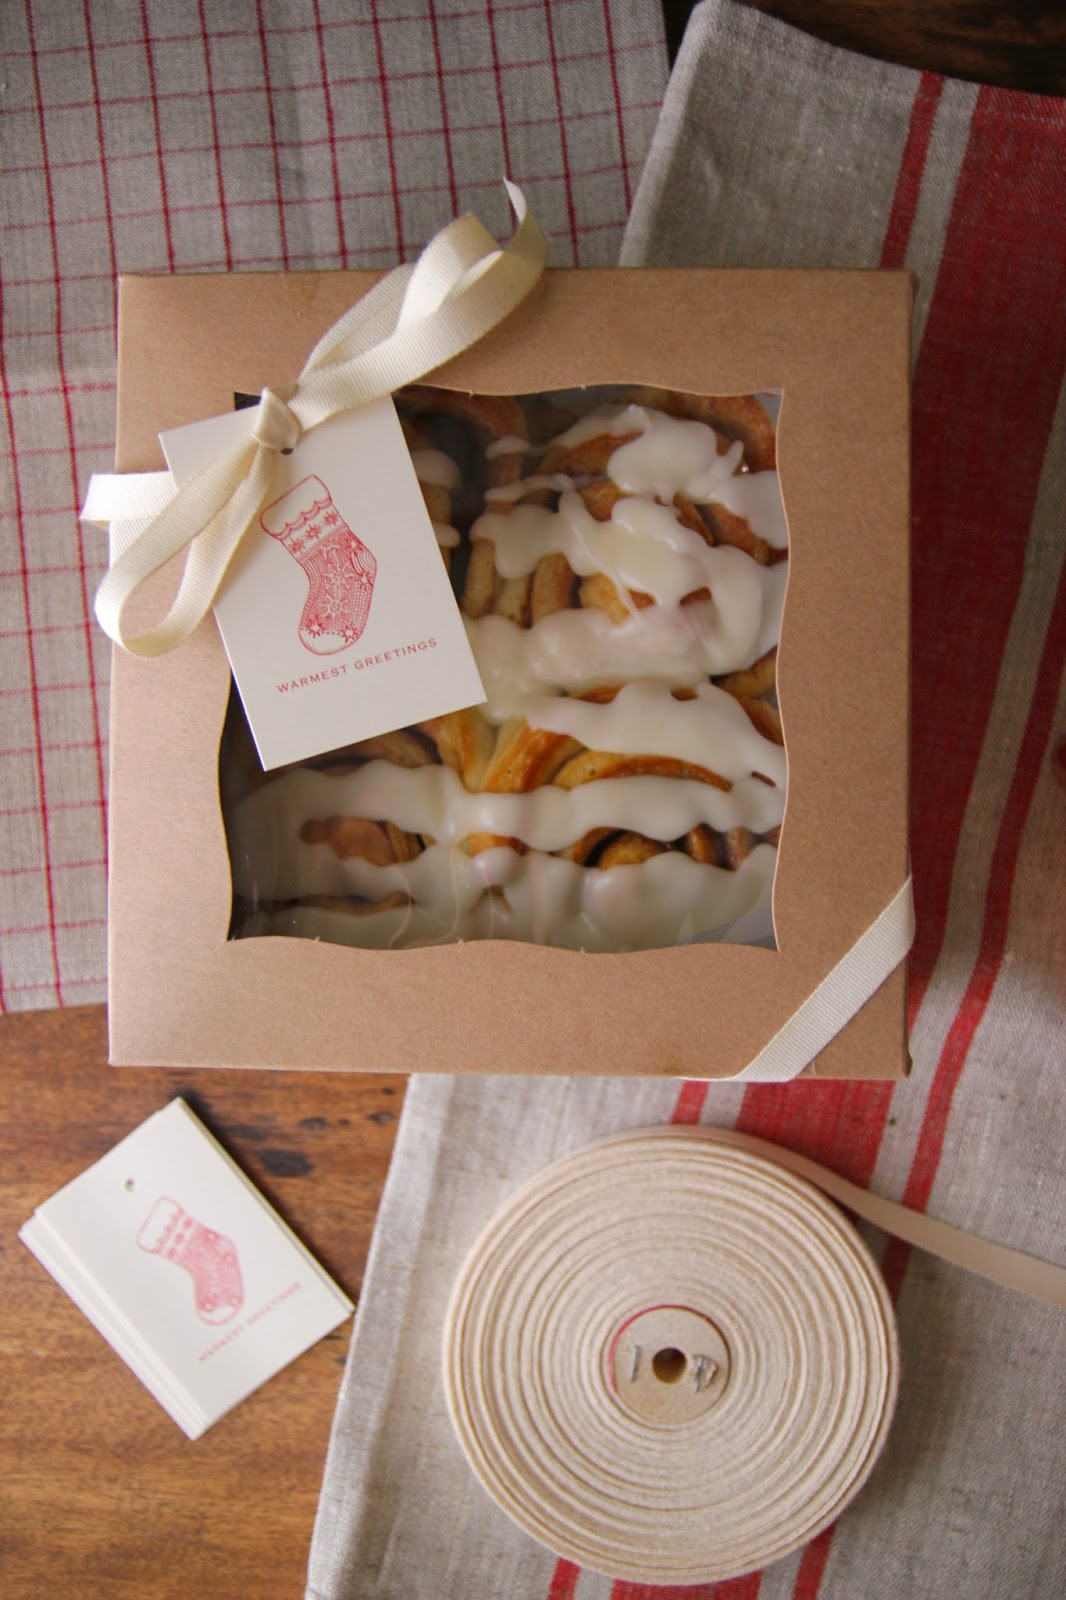 Homemade Cinnamon Roll Gifts Frozen Bread Dough Easy Soooo Good Jenny Steffens Hobick